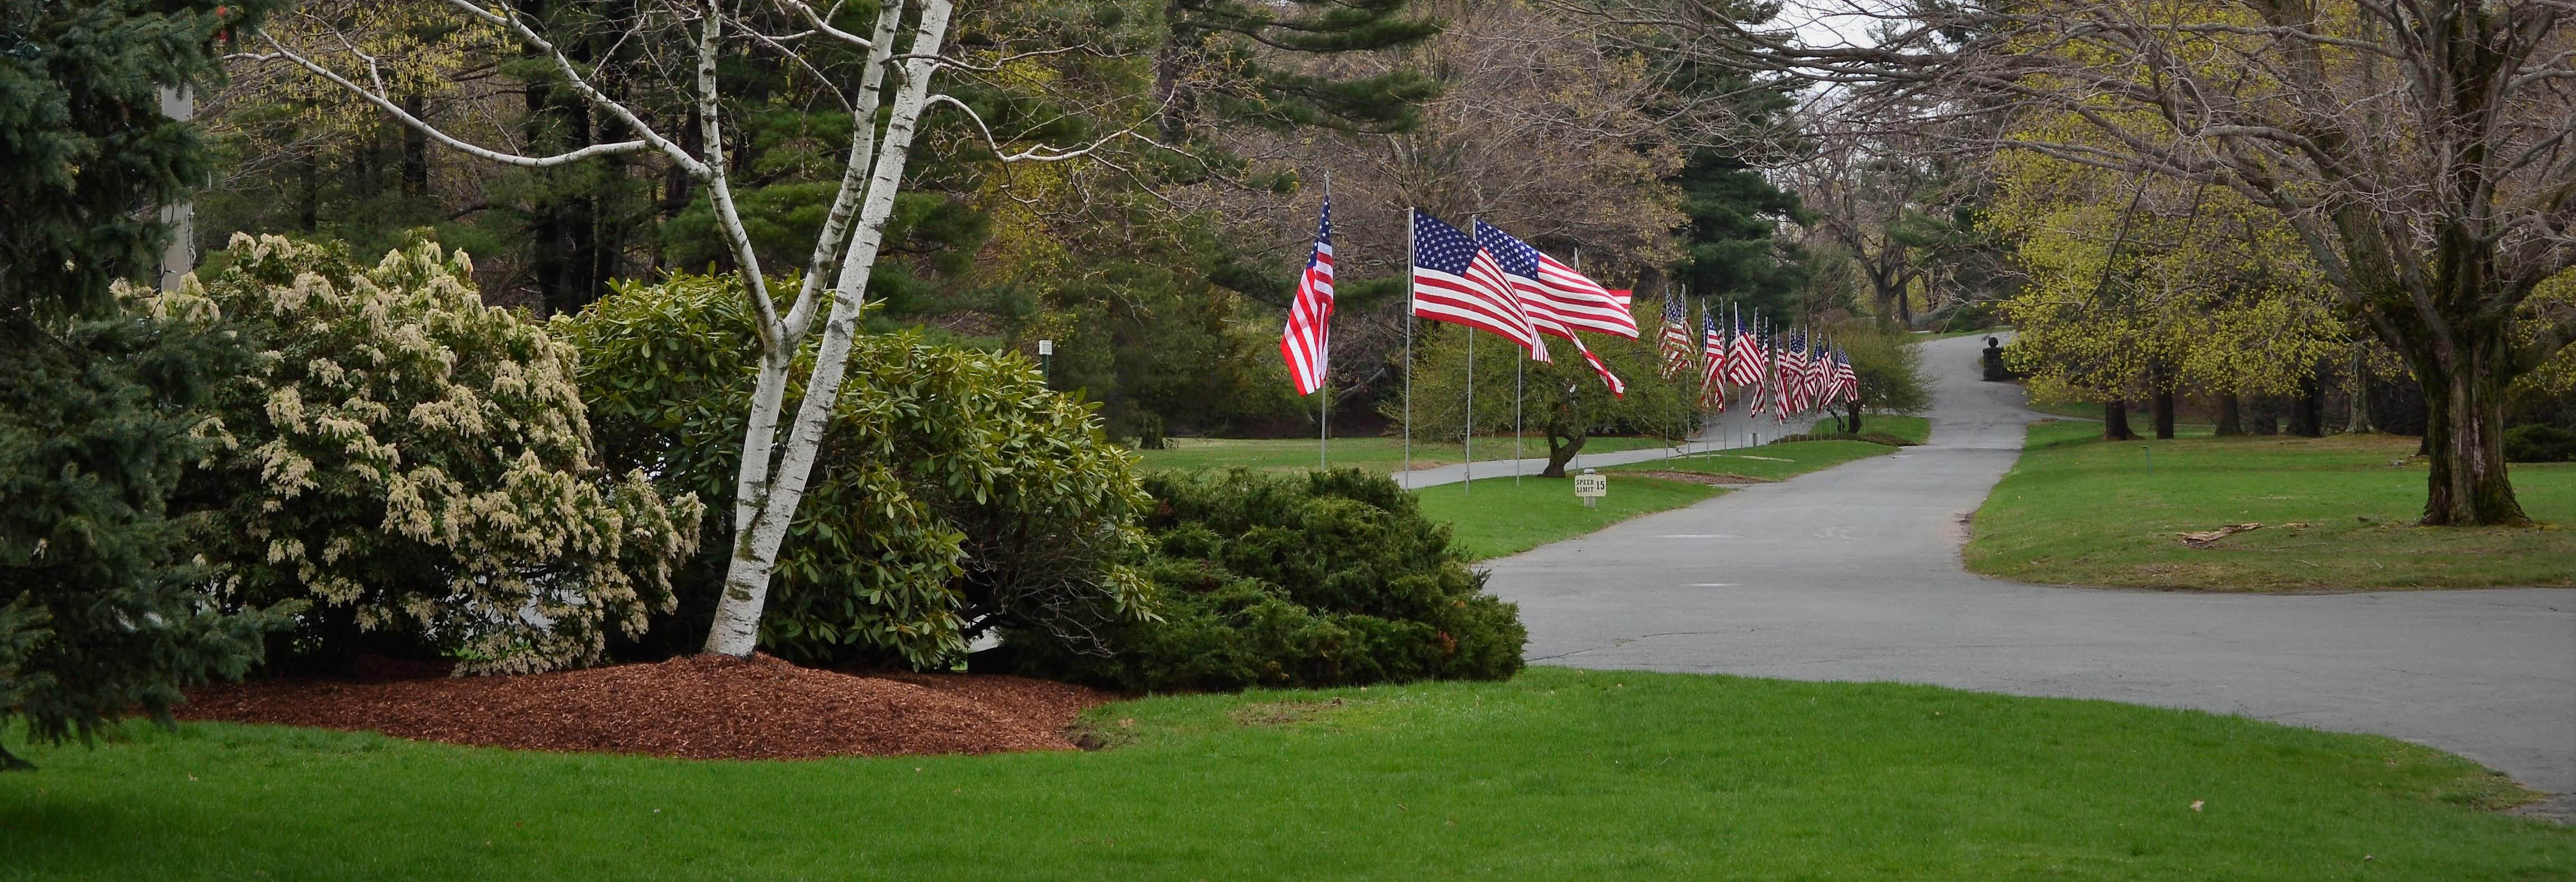 Puritan lawn Memorial Park.  Funeral.  Cemetery.  Cremation Services. Massachusetts.